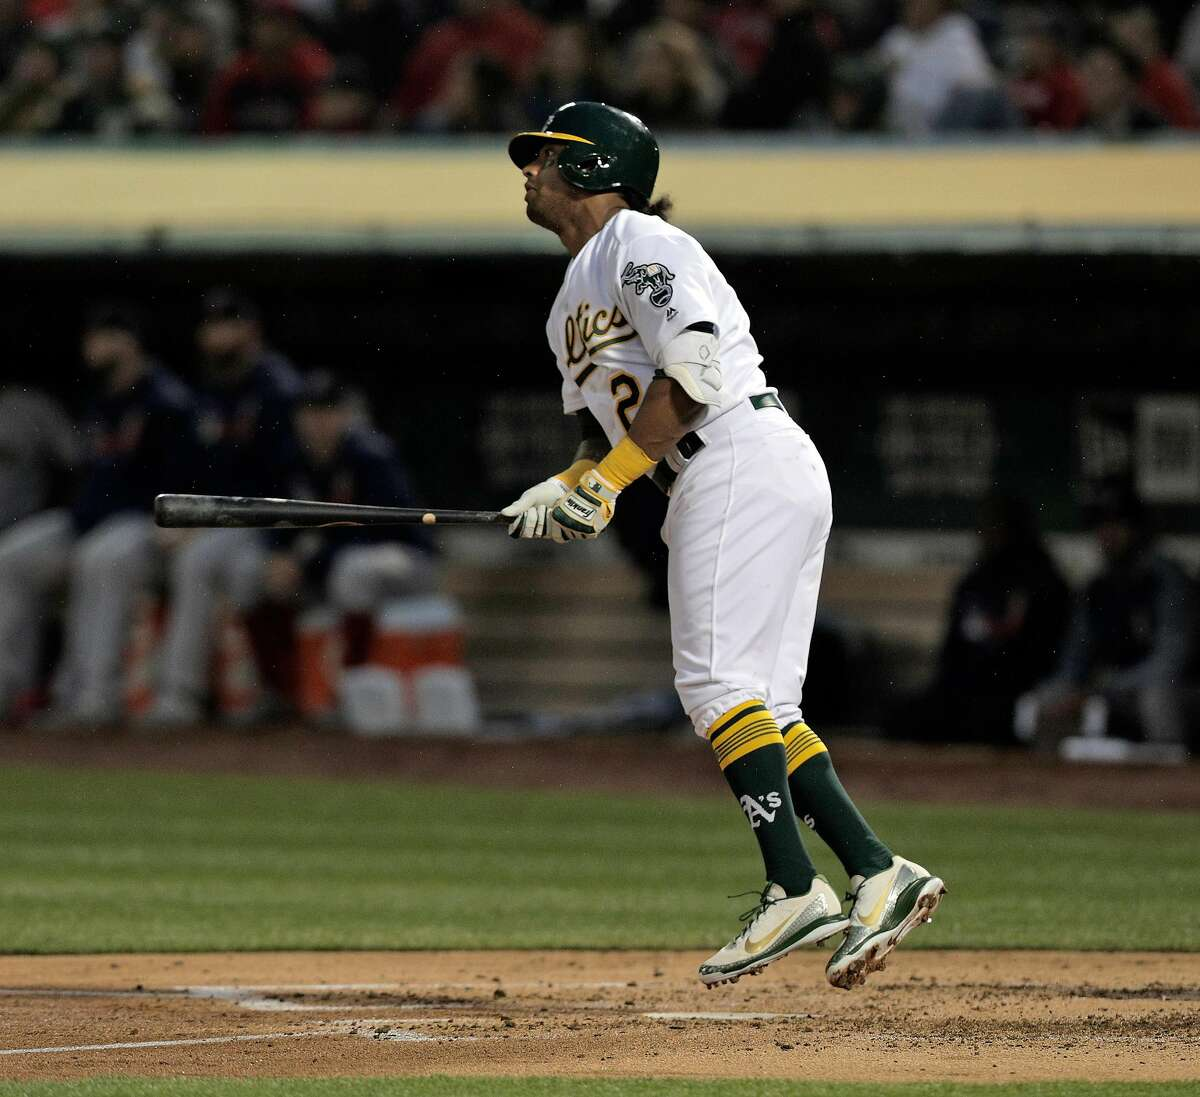 Khris Davis (2) hops up as he watches his solo homerun in the second inning as the Oakland Athletics played the Boston Red Sox at the Coliseum in Oakland, Calif., on Monday, April 1, 2019.